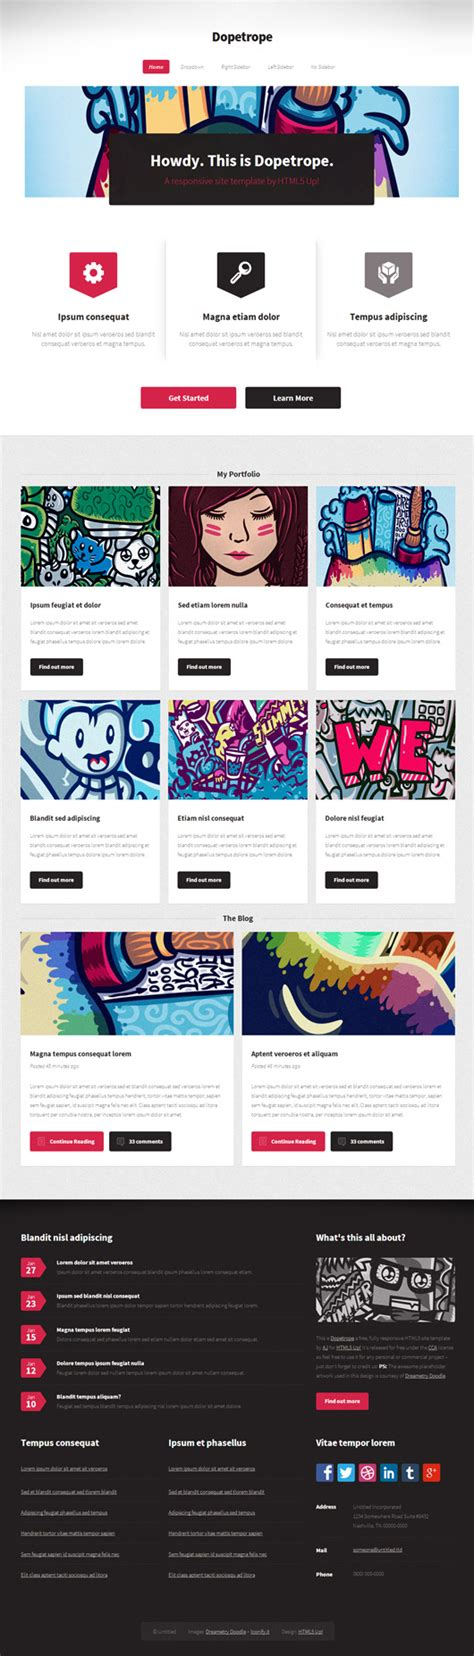 Free Responsive Web Templates With Psd Freebies Graphic Design Junction Graphic Design Website Templates